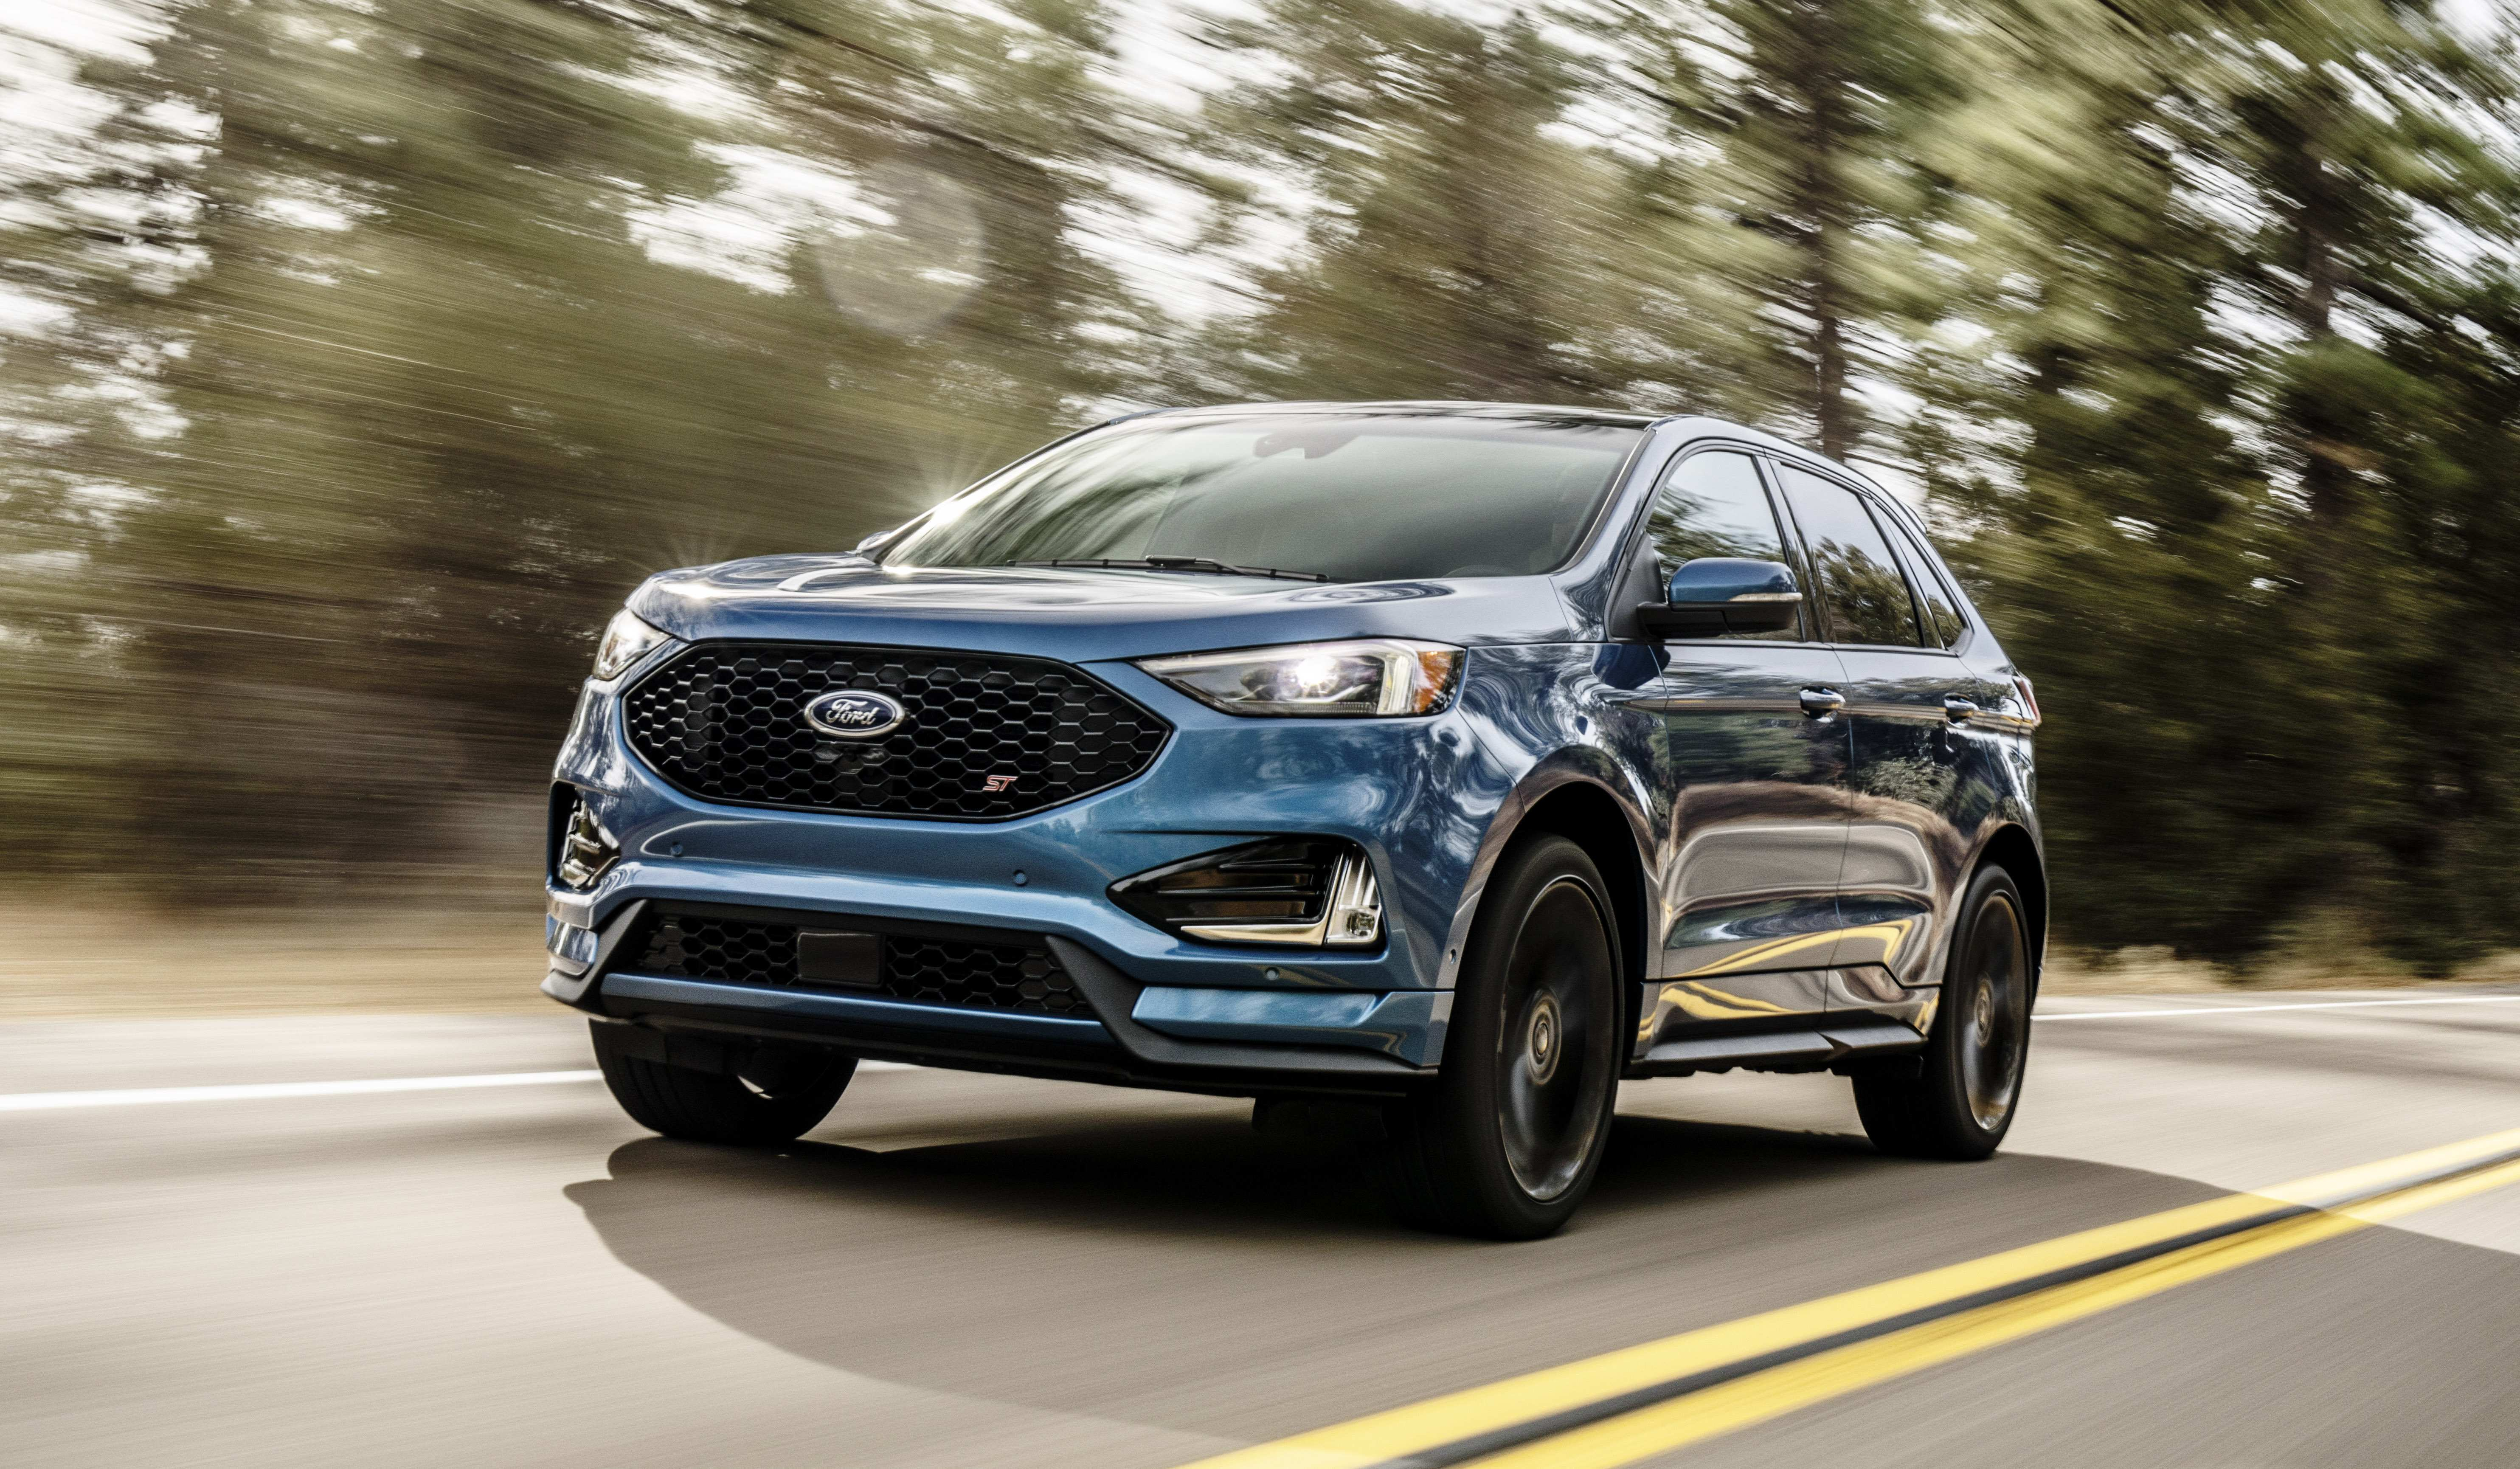 70 All New Best Ford 2019 Lineup Release Date Performance New Review for Best Ford 2019 Lineup Release Date Performance